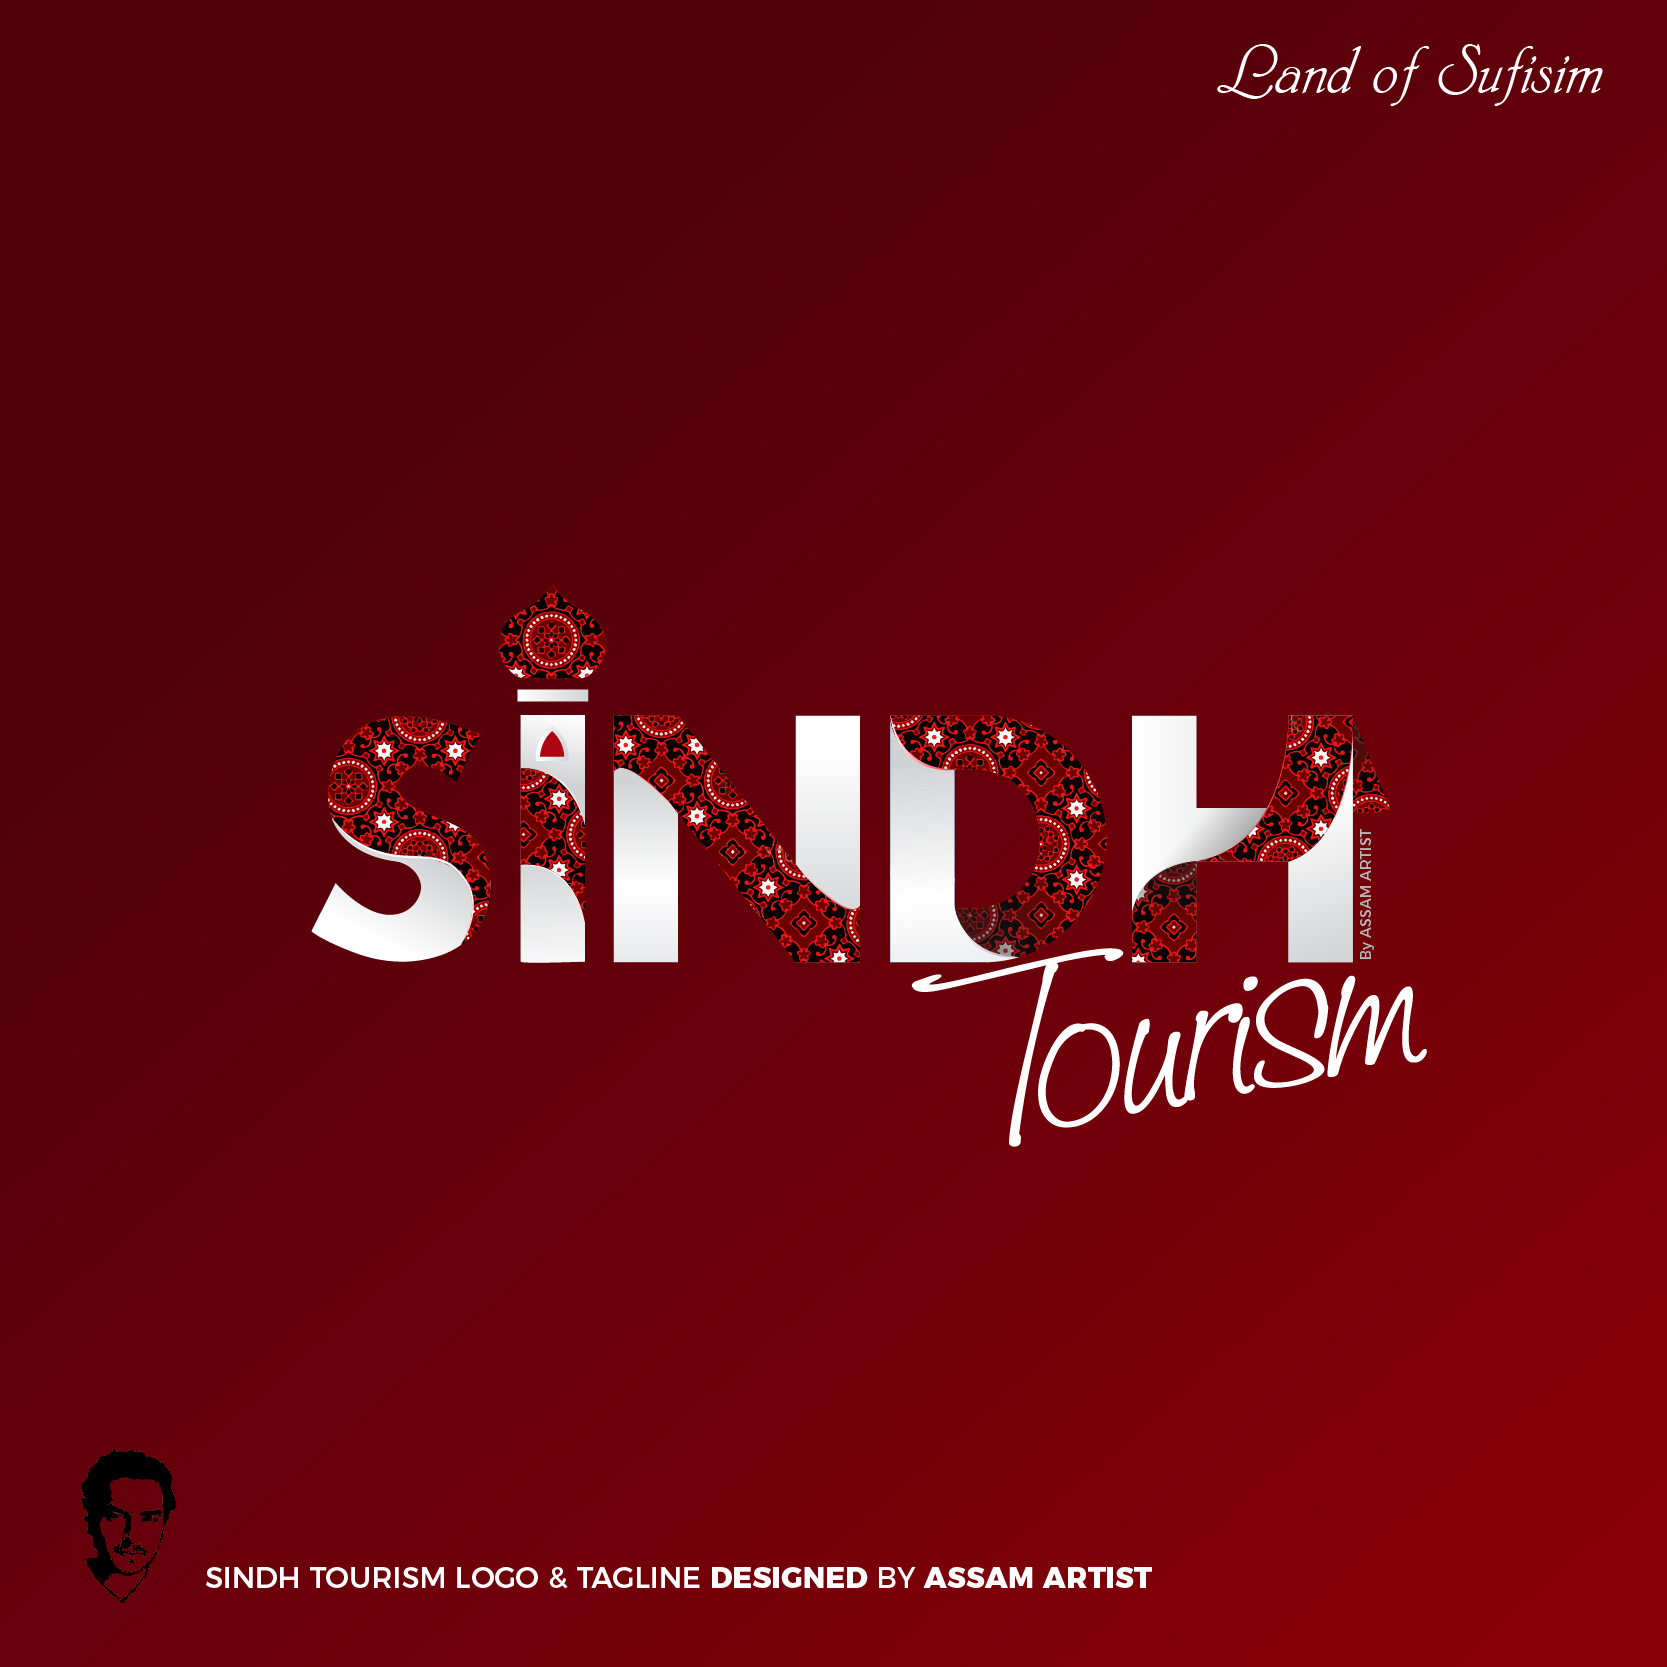 sindh tourism logo of pakistan design by assam